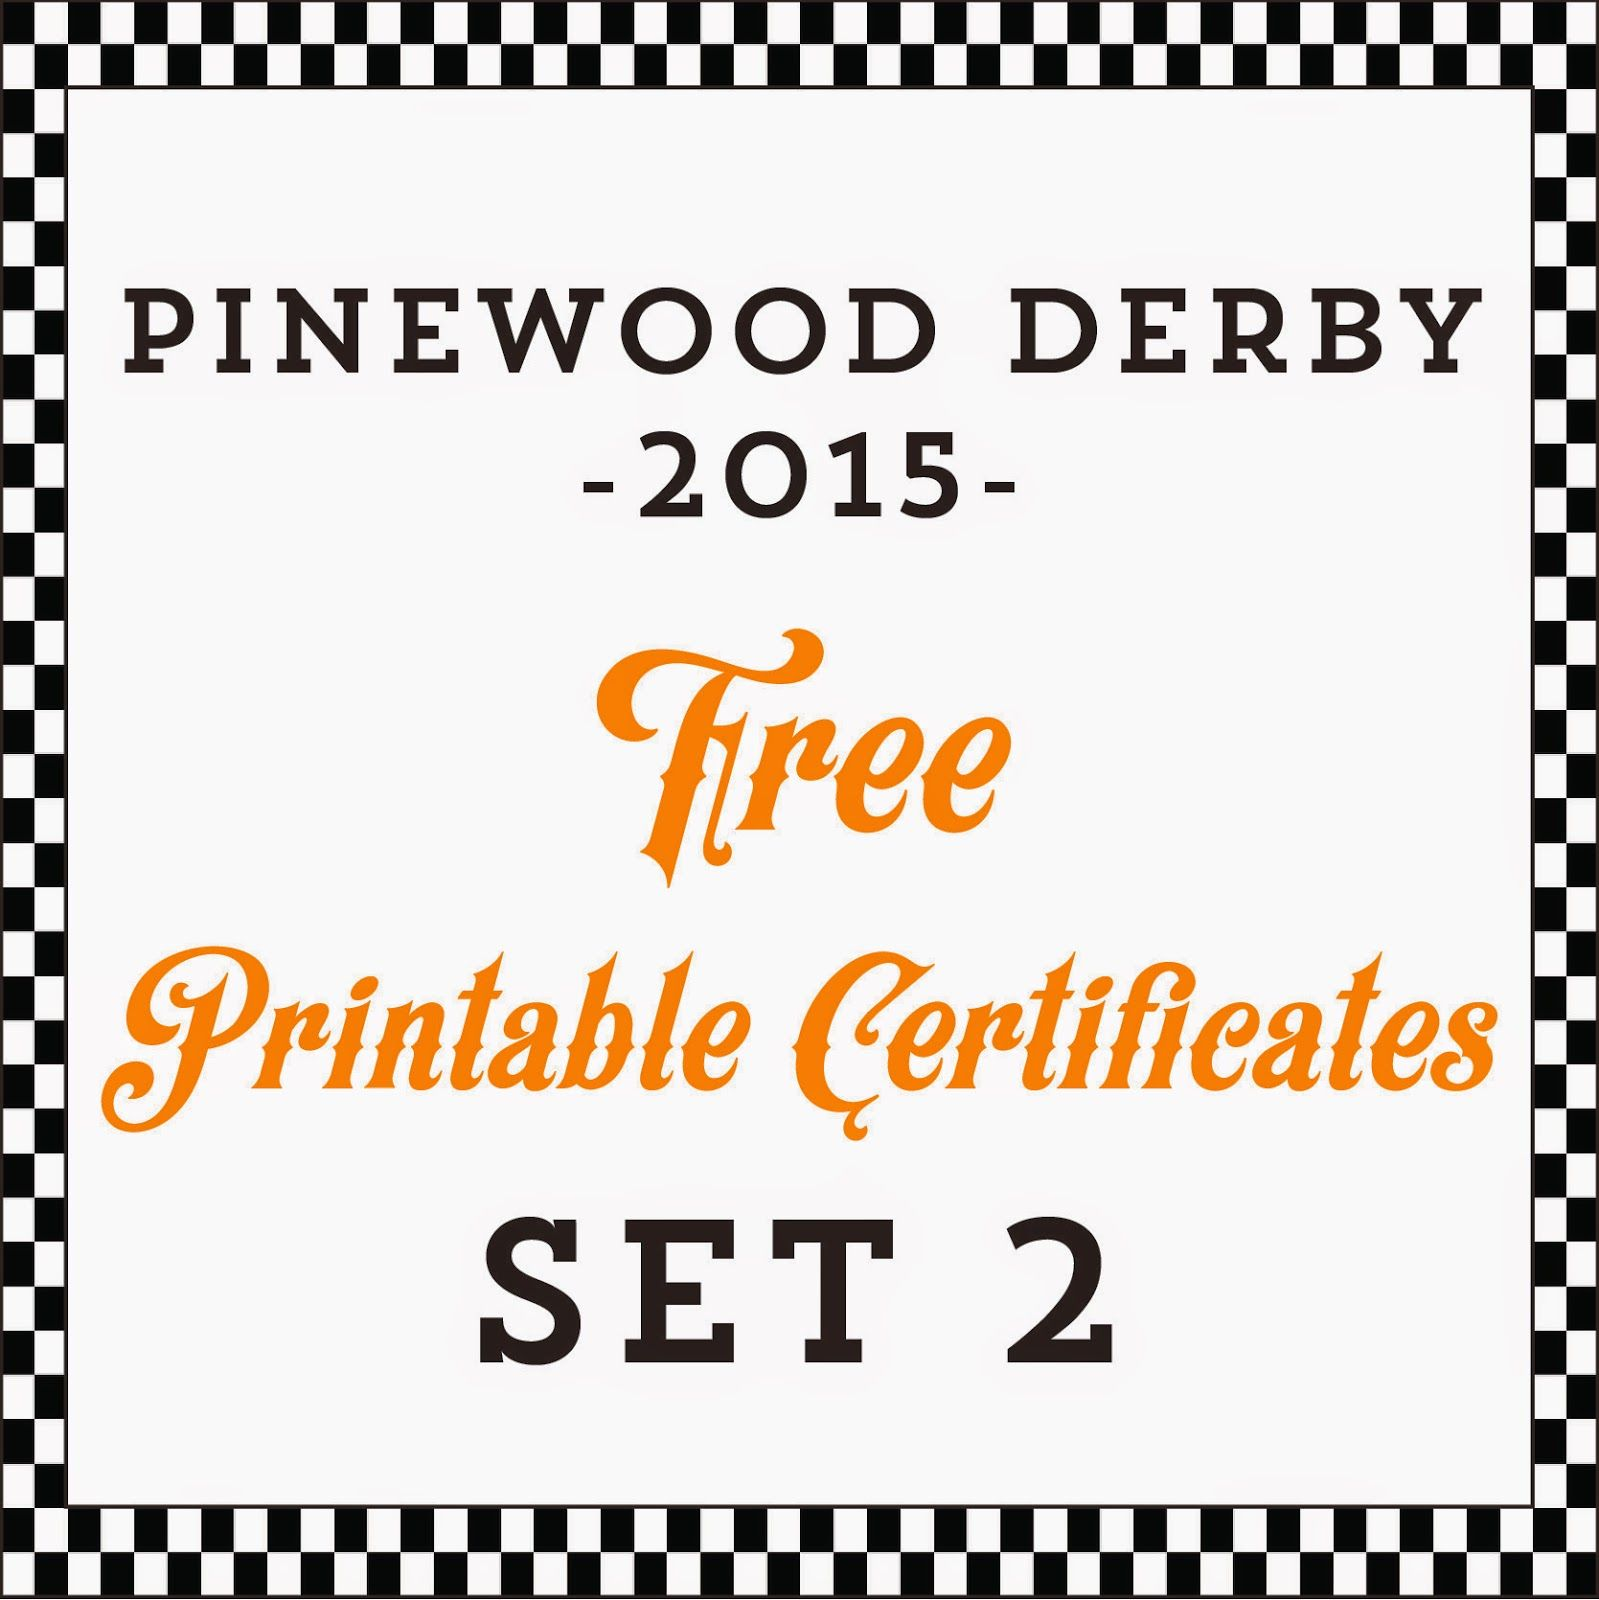 Hot Commodity Home Decor: Free Printable Pinewood Derby Awards ...